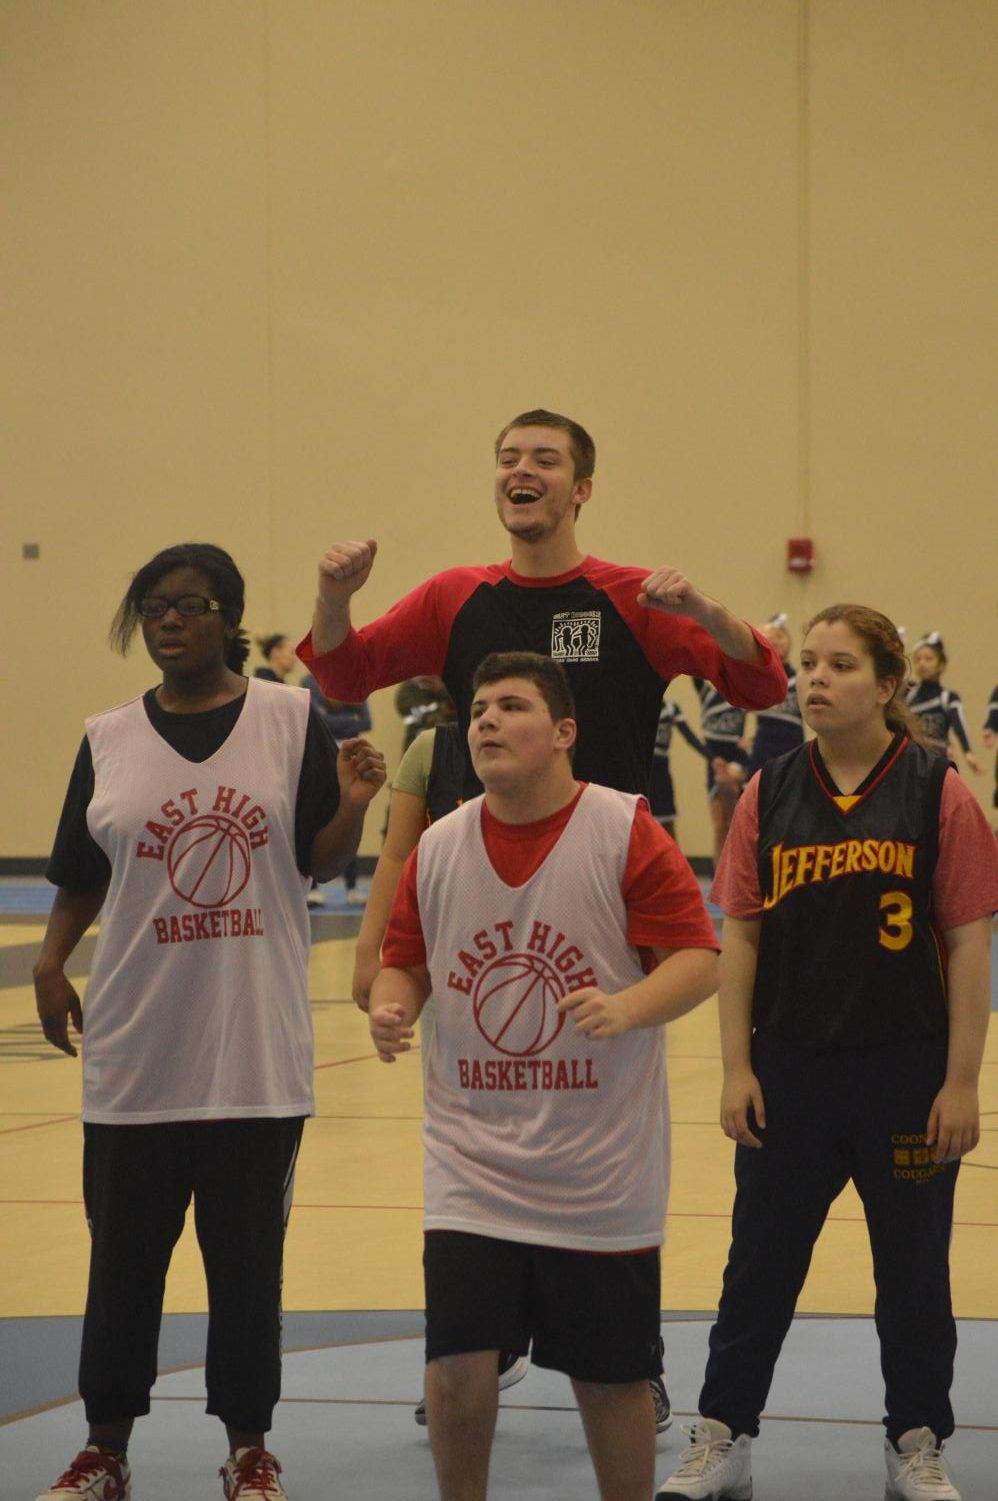 Derek Moore, class of 2019, cheers on the Buddies Club team as they attempt to score a basket. Moore coached the Buddies Club team in preparation for the tournament.